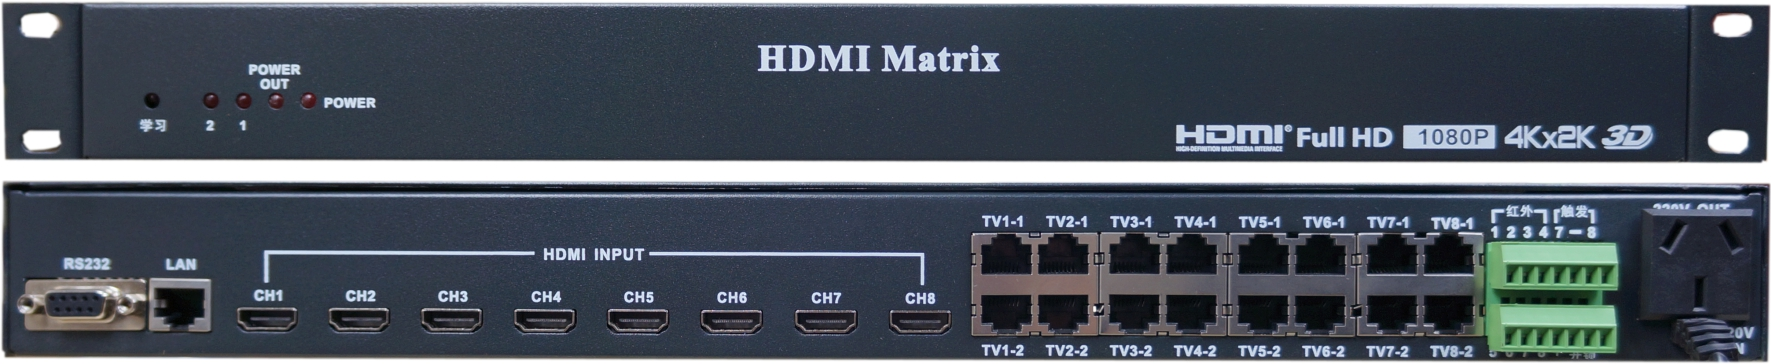 Eight in eight out, HDMI808/HDMI404 HD 3D, 4K video matrix, set-top box sharing